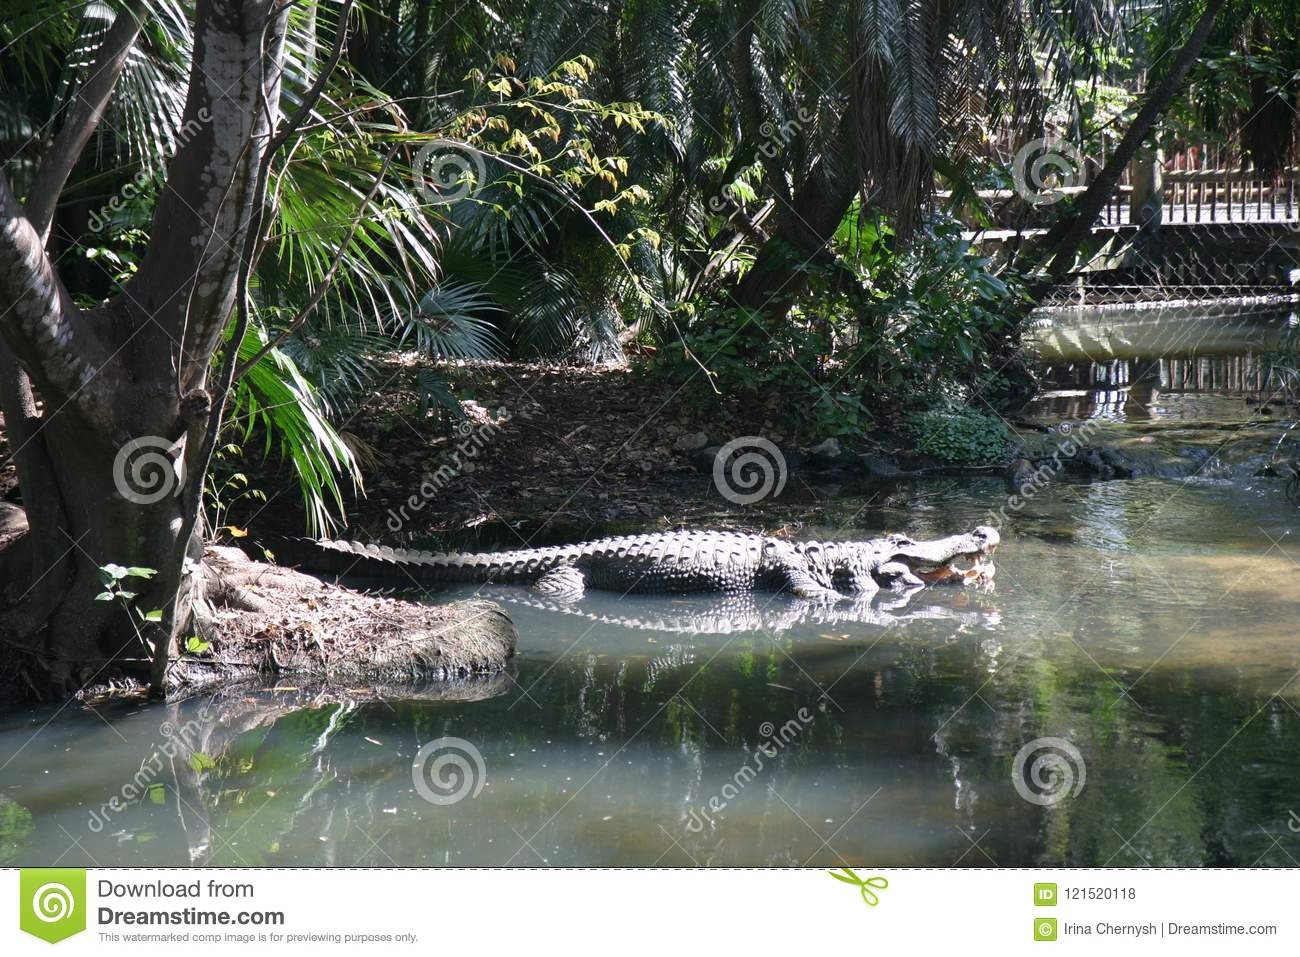 Big alligator in green water with plant in zoo